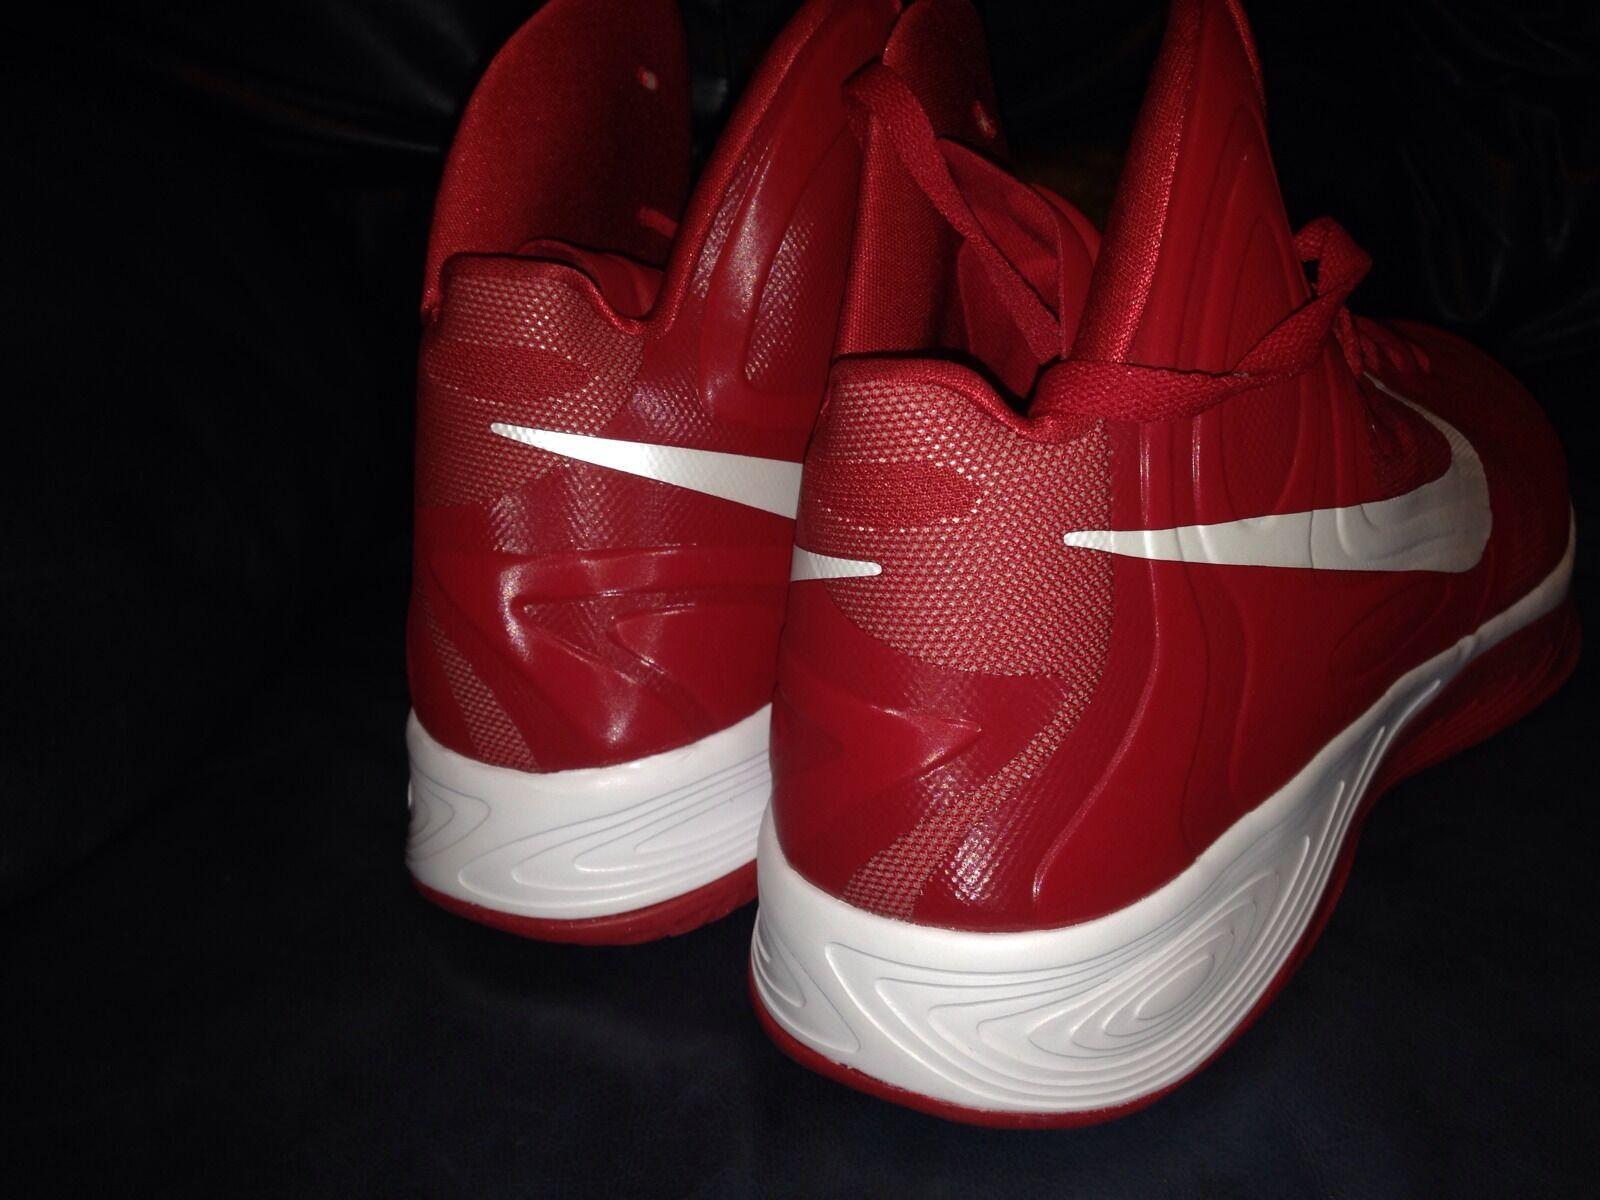 DS Nike Hyperfuse Red Mens Basketball shoes Size Size Size 18 6cf793